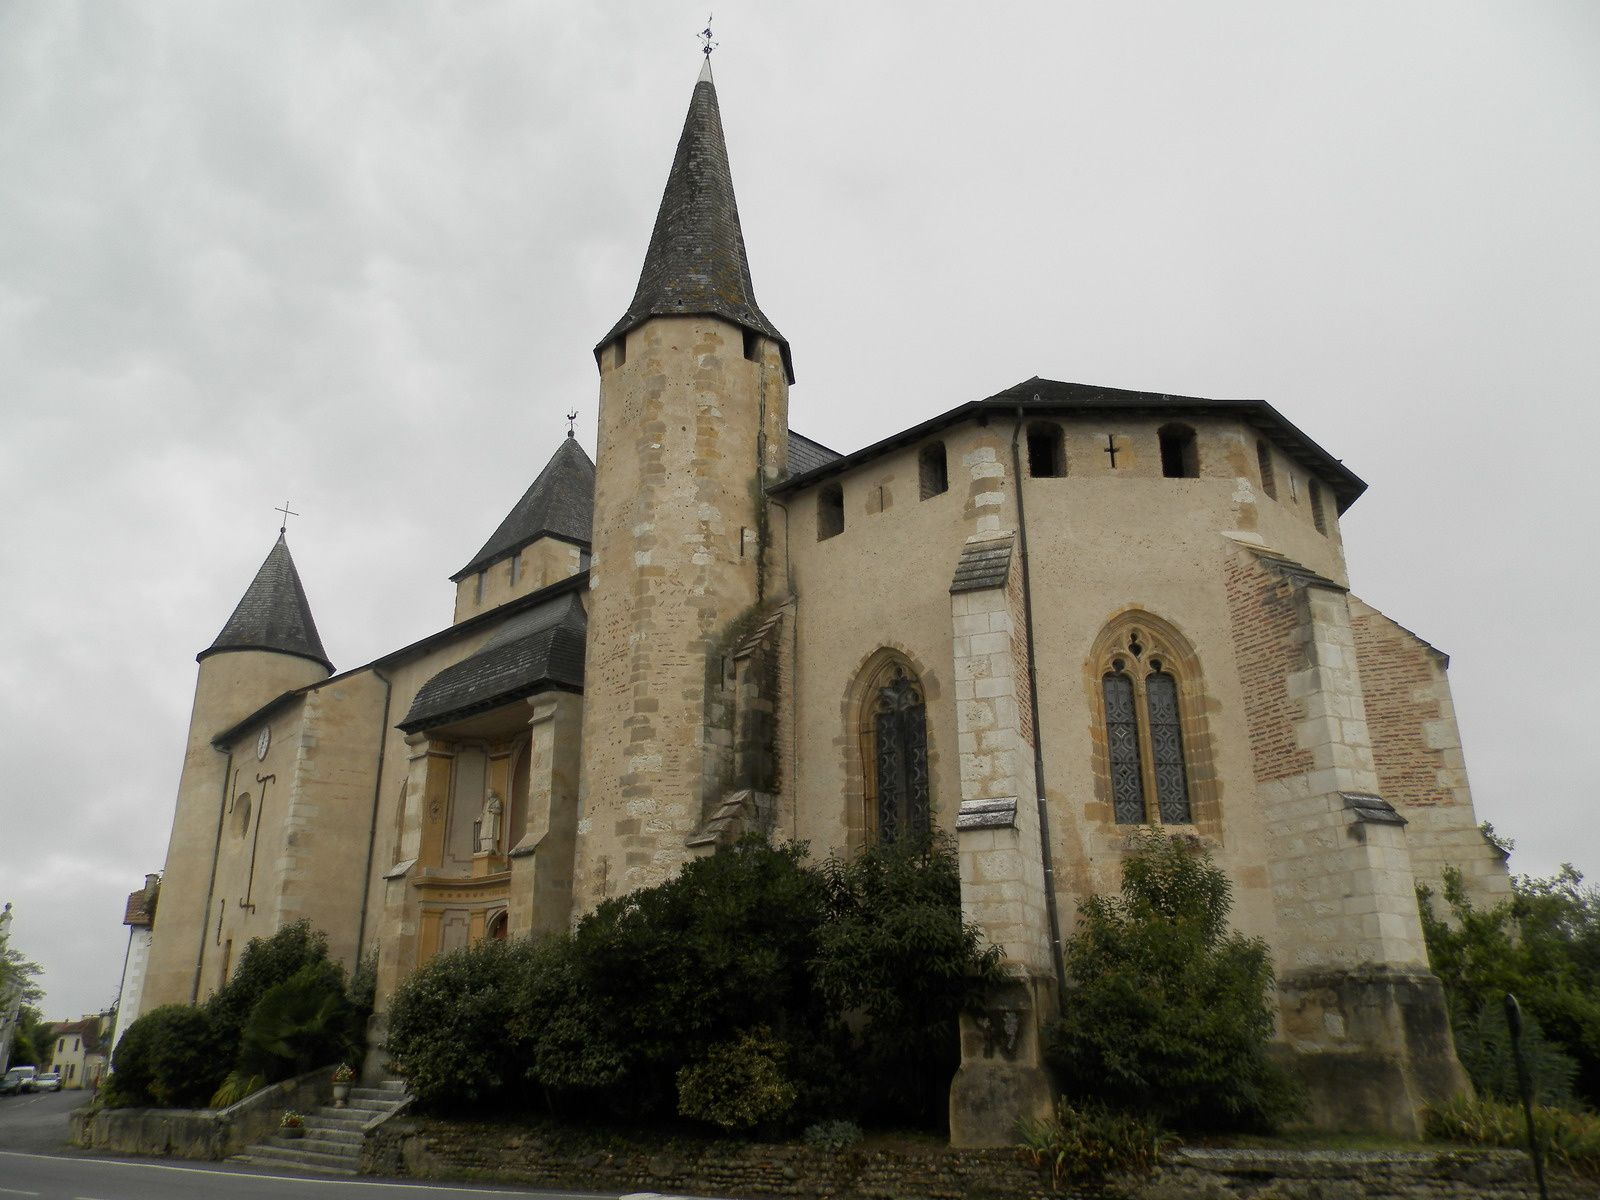 eglise St Laurent de morlanne